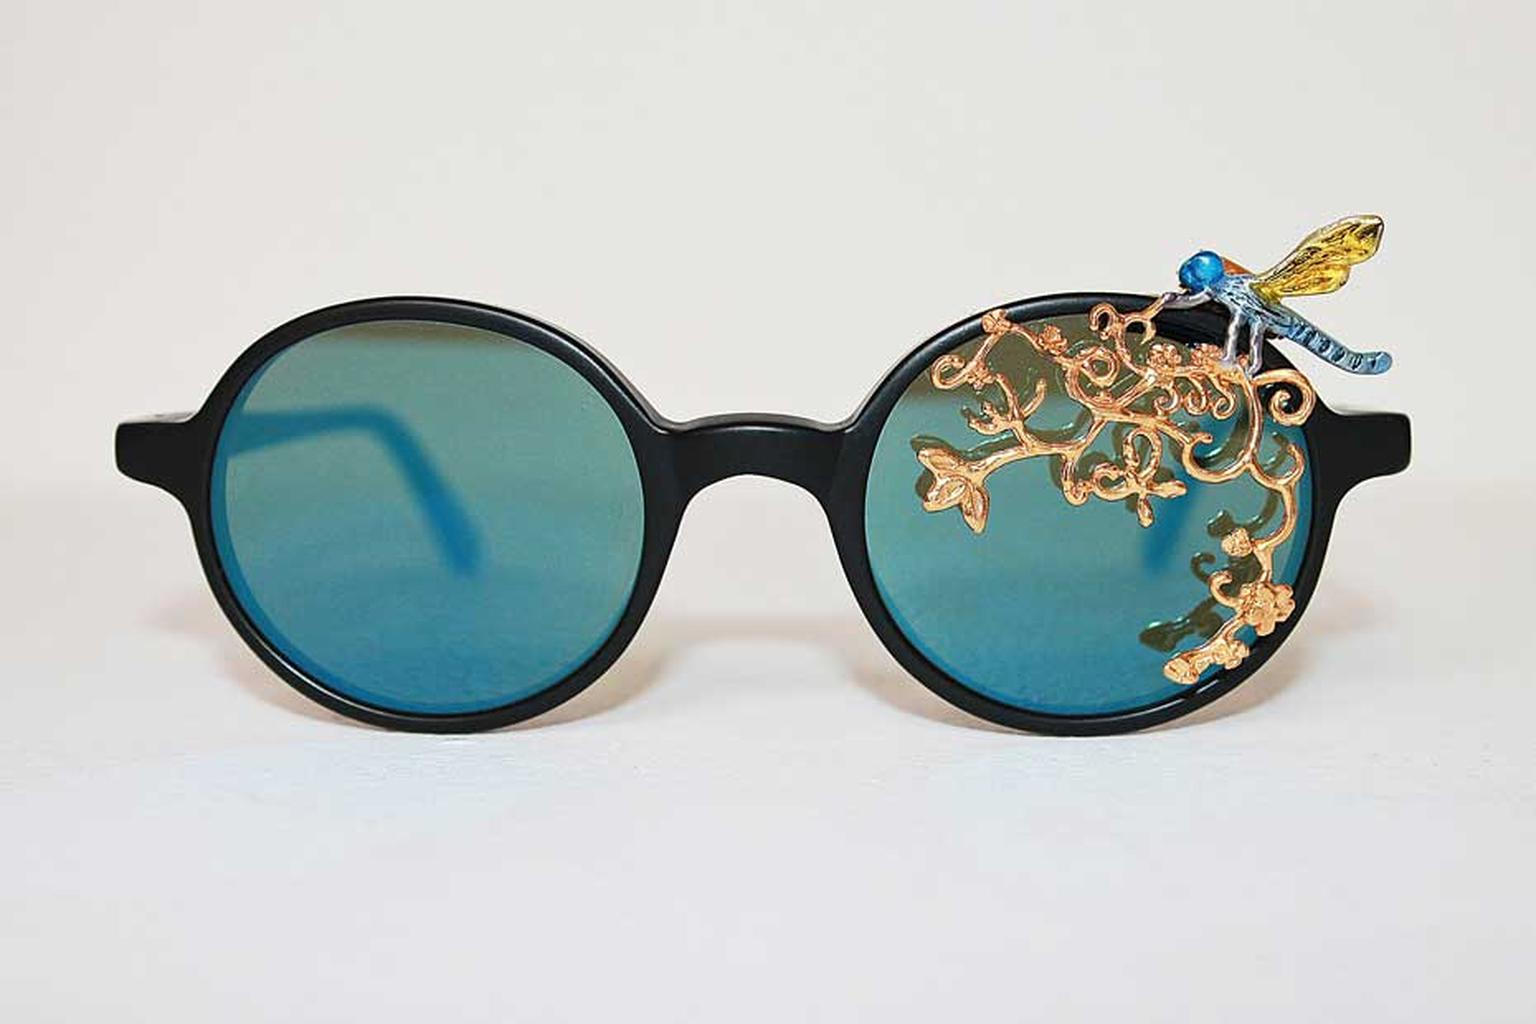 Maskhara with Dragonfly sunglasses in gold-plated silver and enamel, available in a signed and numbered limited edition of 25, created by Iranian artist Avish Khebrehzadeh for L.G.R.